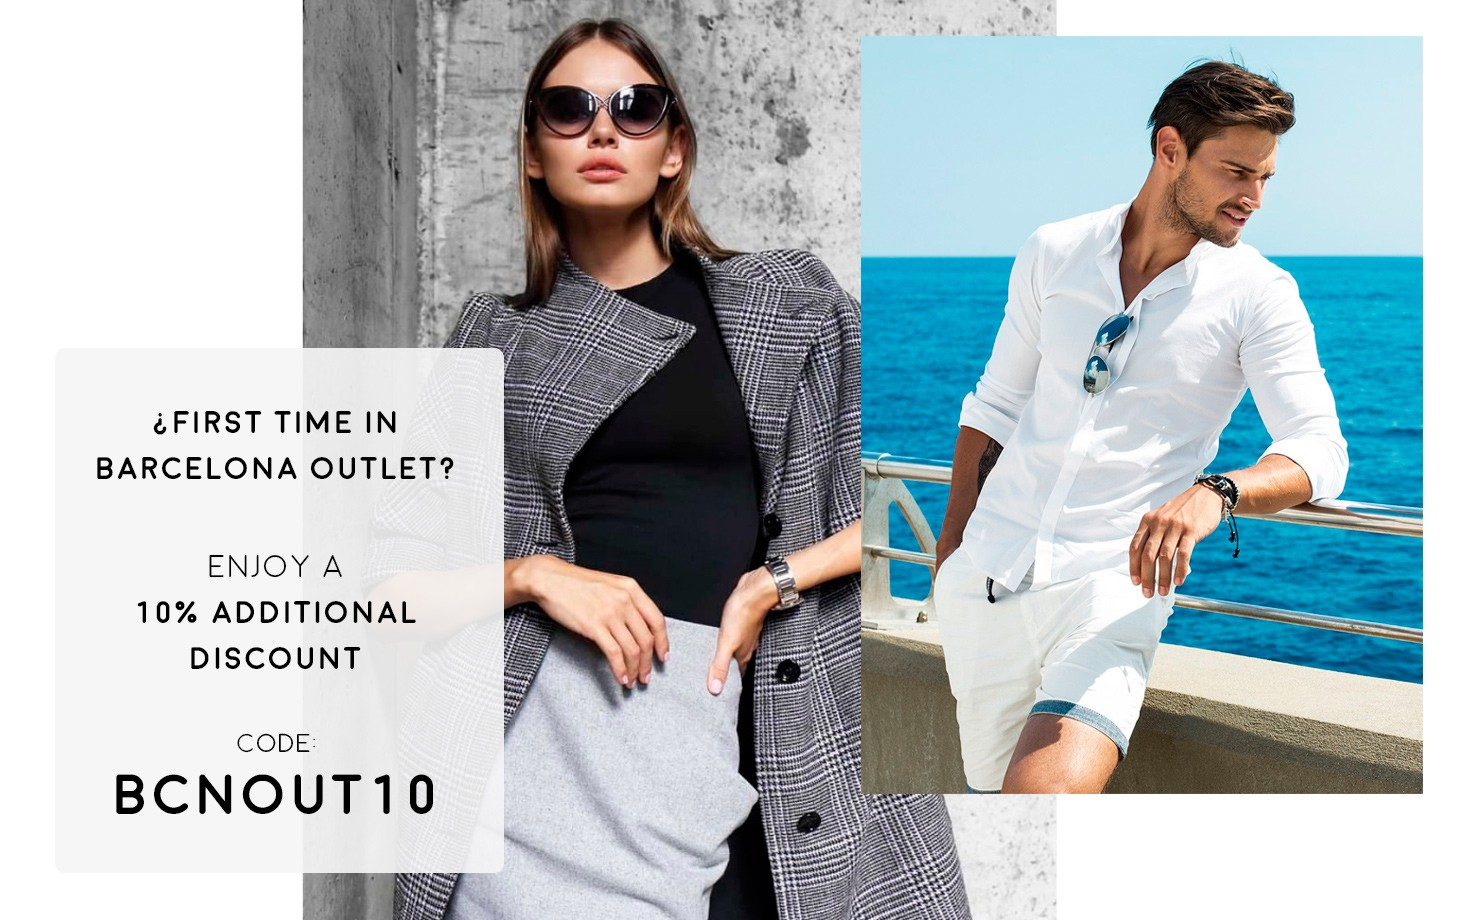 10% discount on your first online purchase at Barcelona Outlet